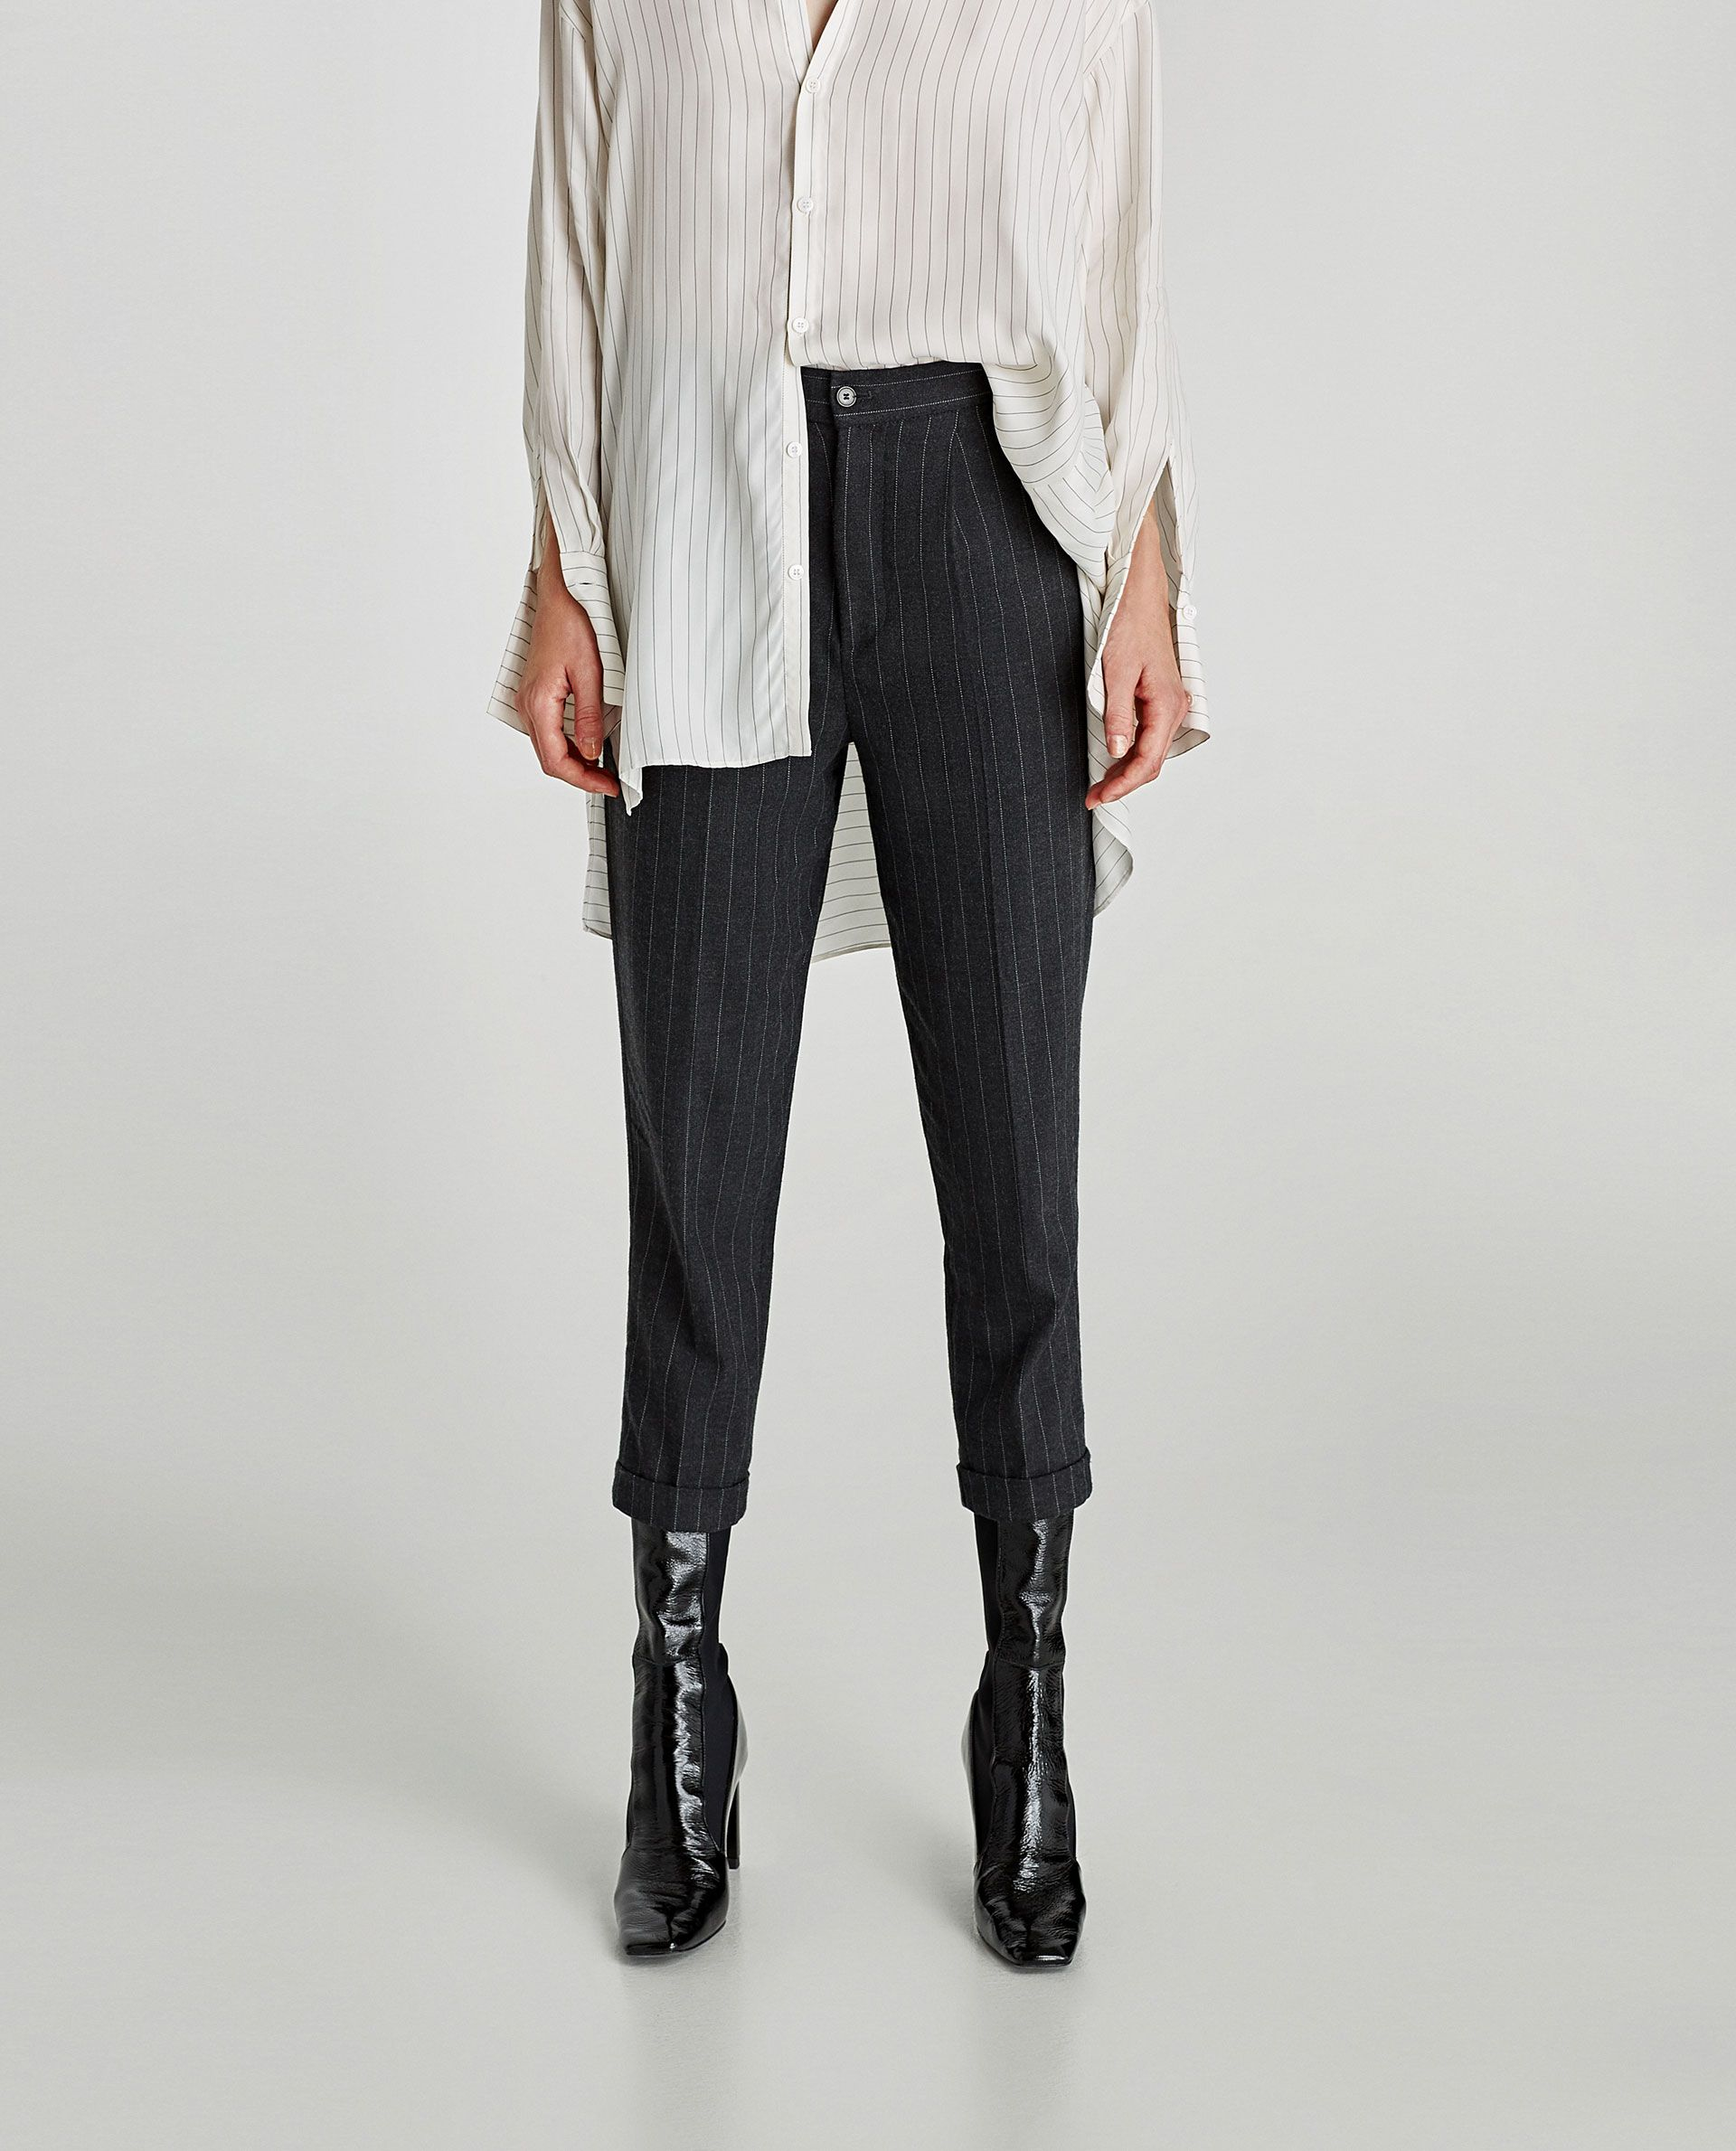 bffe0b19 Image 2 of PINSTRIPE TROUSERS from Zara | Shopping guide | Trousers ...